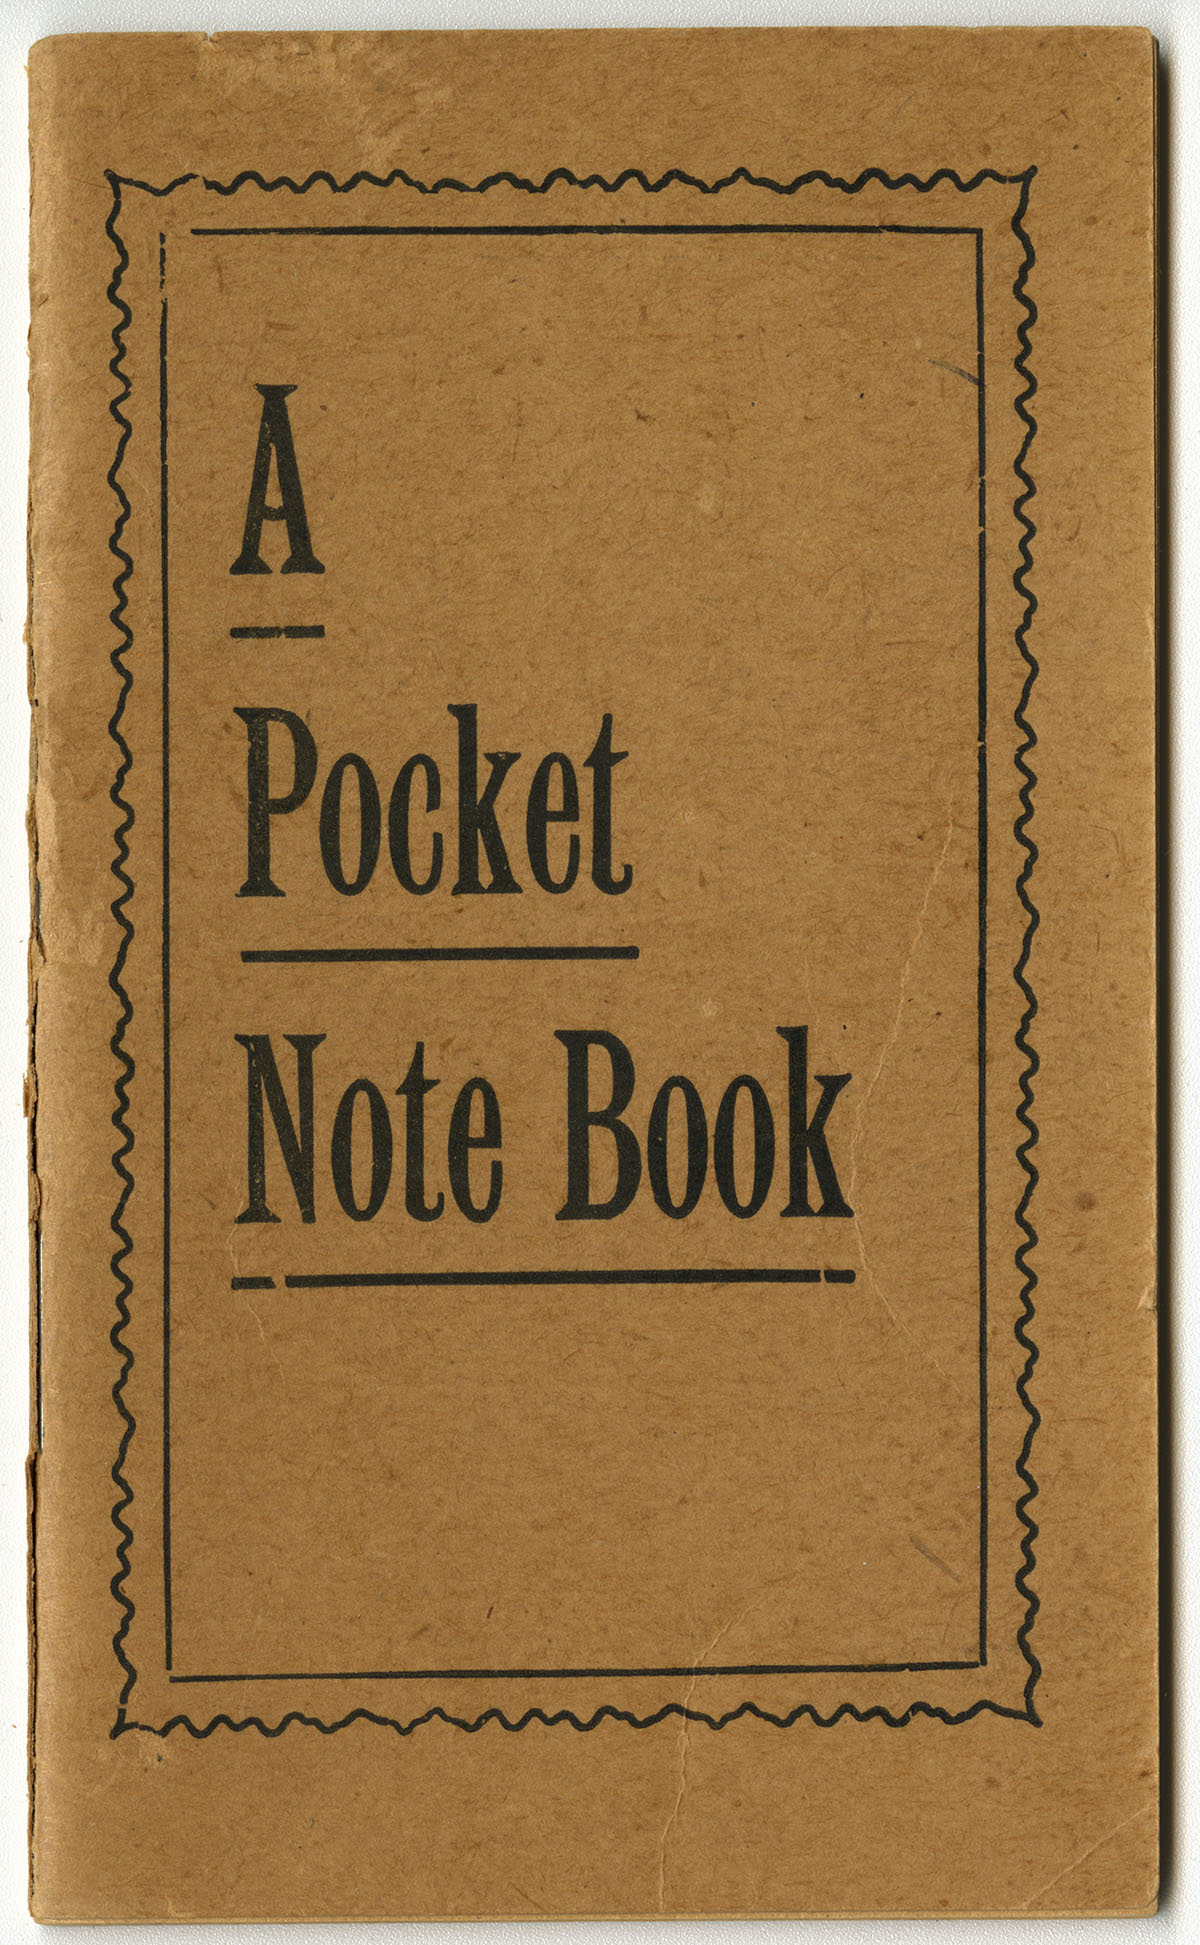 A Pocket Note Book (Philadelphia: National Medical Institute, 1910). Gift of William H. Helfand.